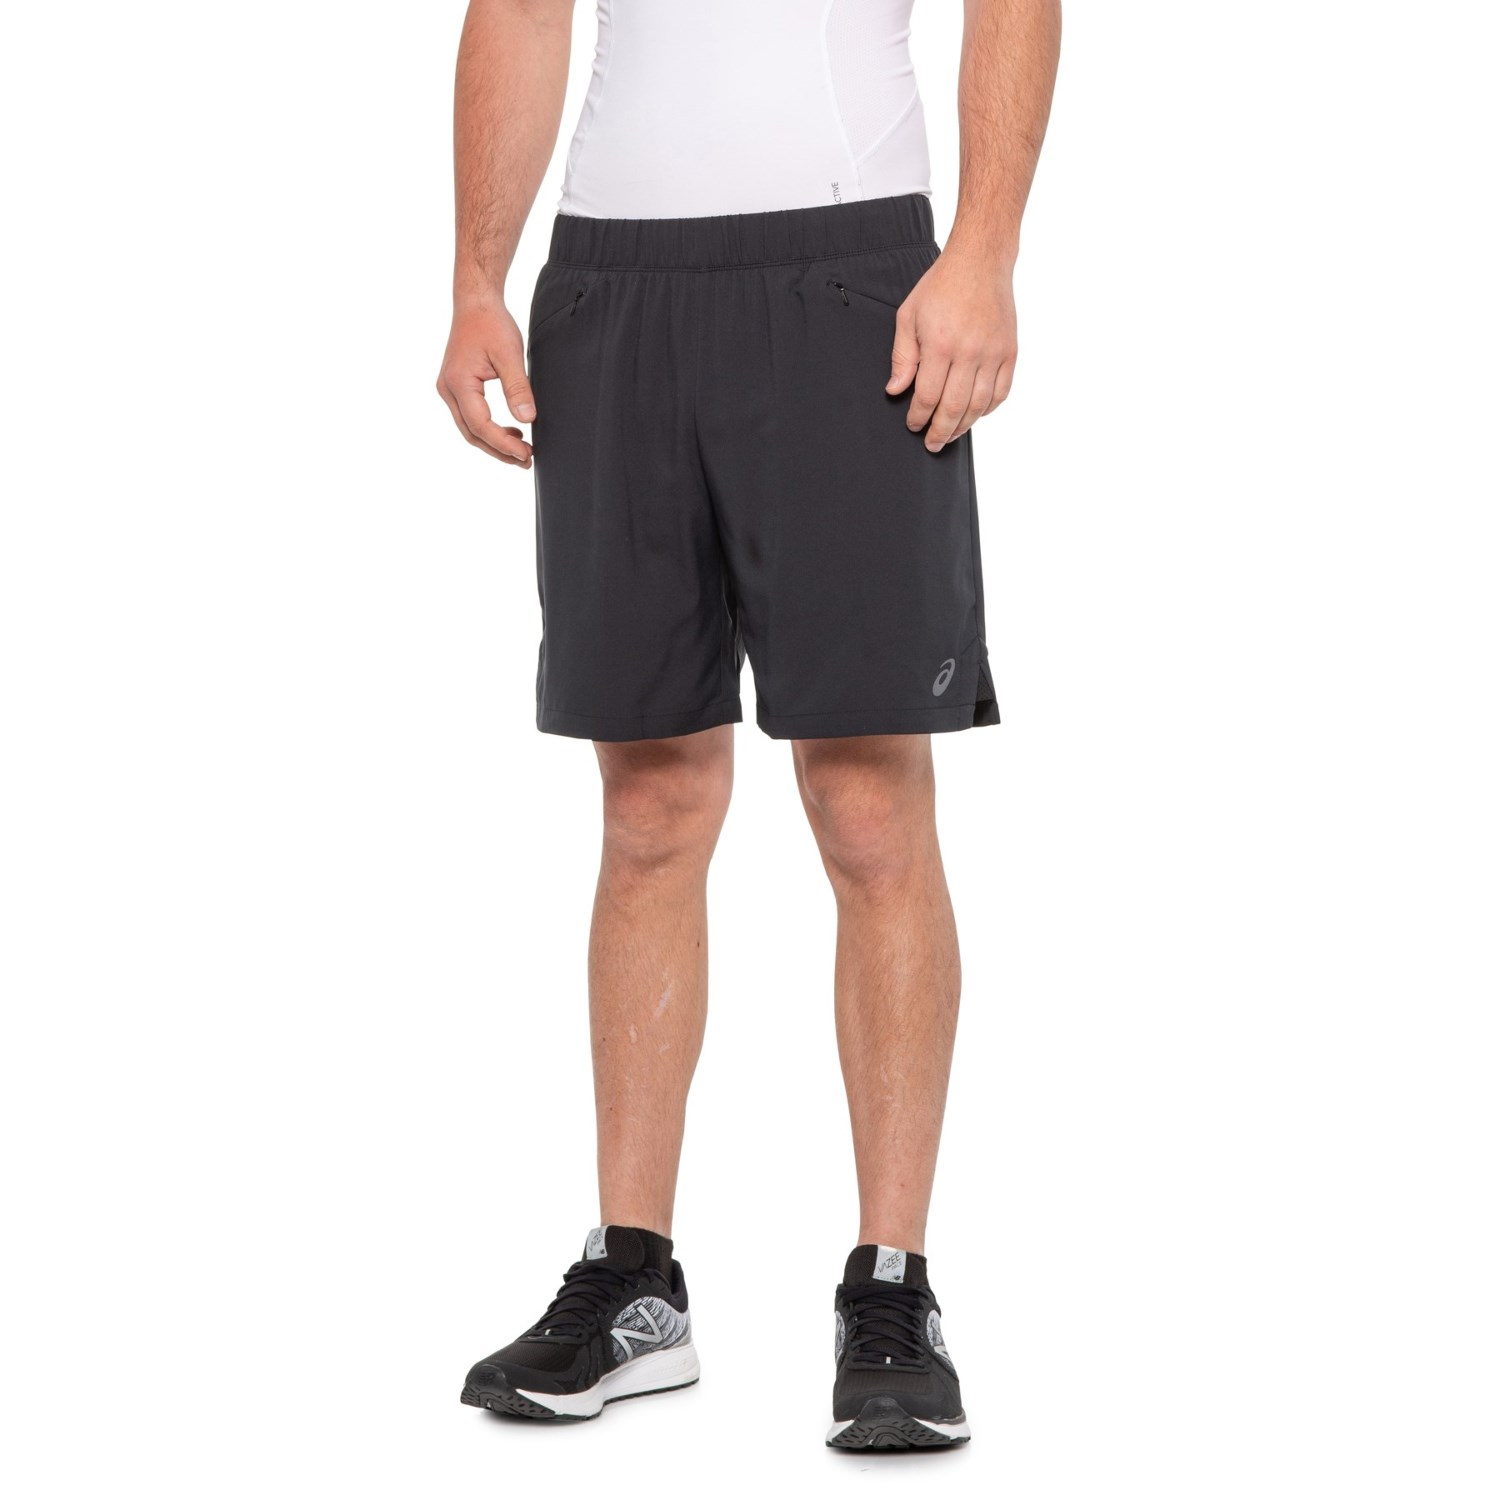 3cdb6f0b27 ASICS 2-in-1 Running Shorts (For Men)